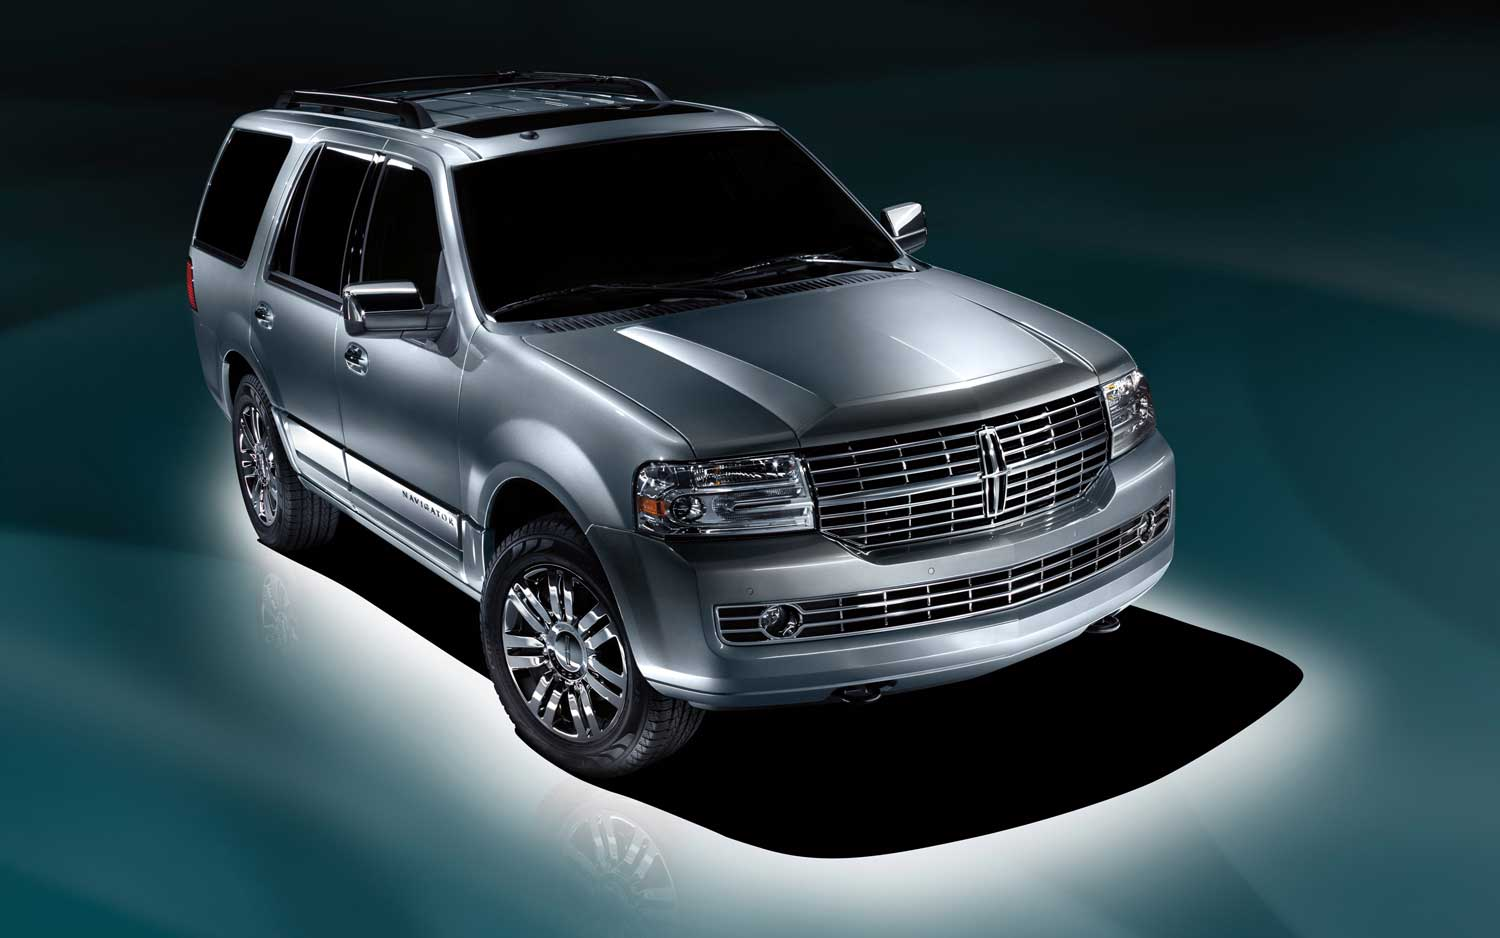 Top 10 Most Expensive Trucks And Suvs To Insure For The 2012 Model